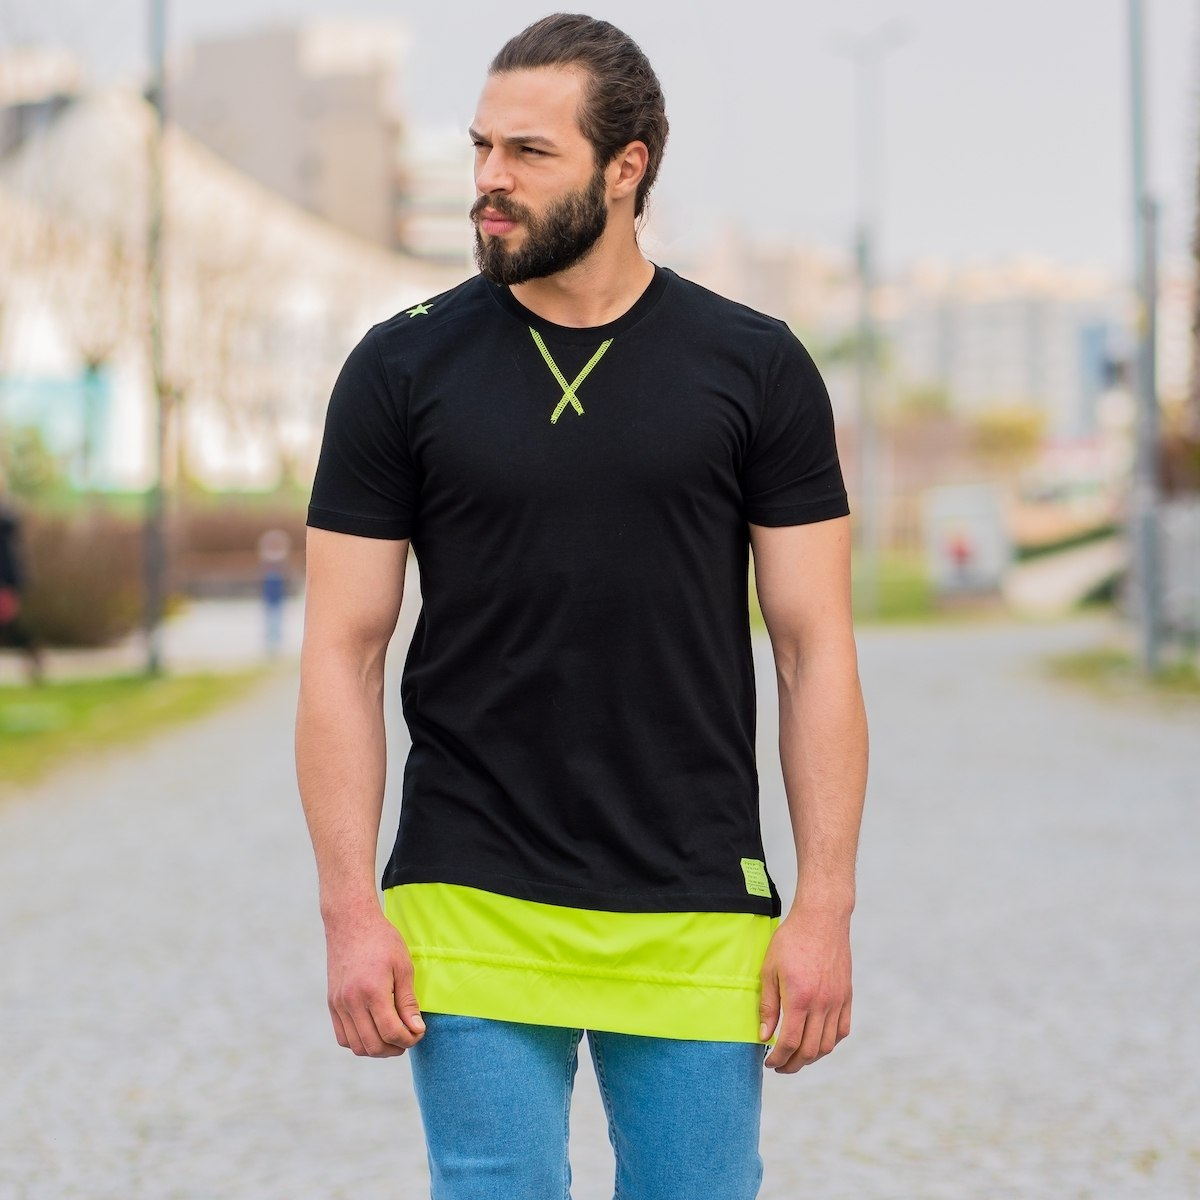 Men's Double-Tailed Neon Oversize T-Shirt In Black